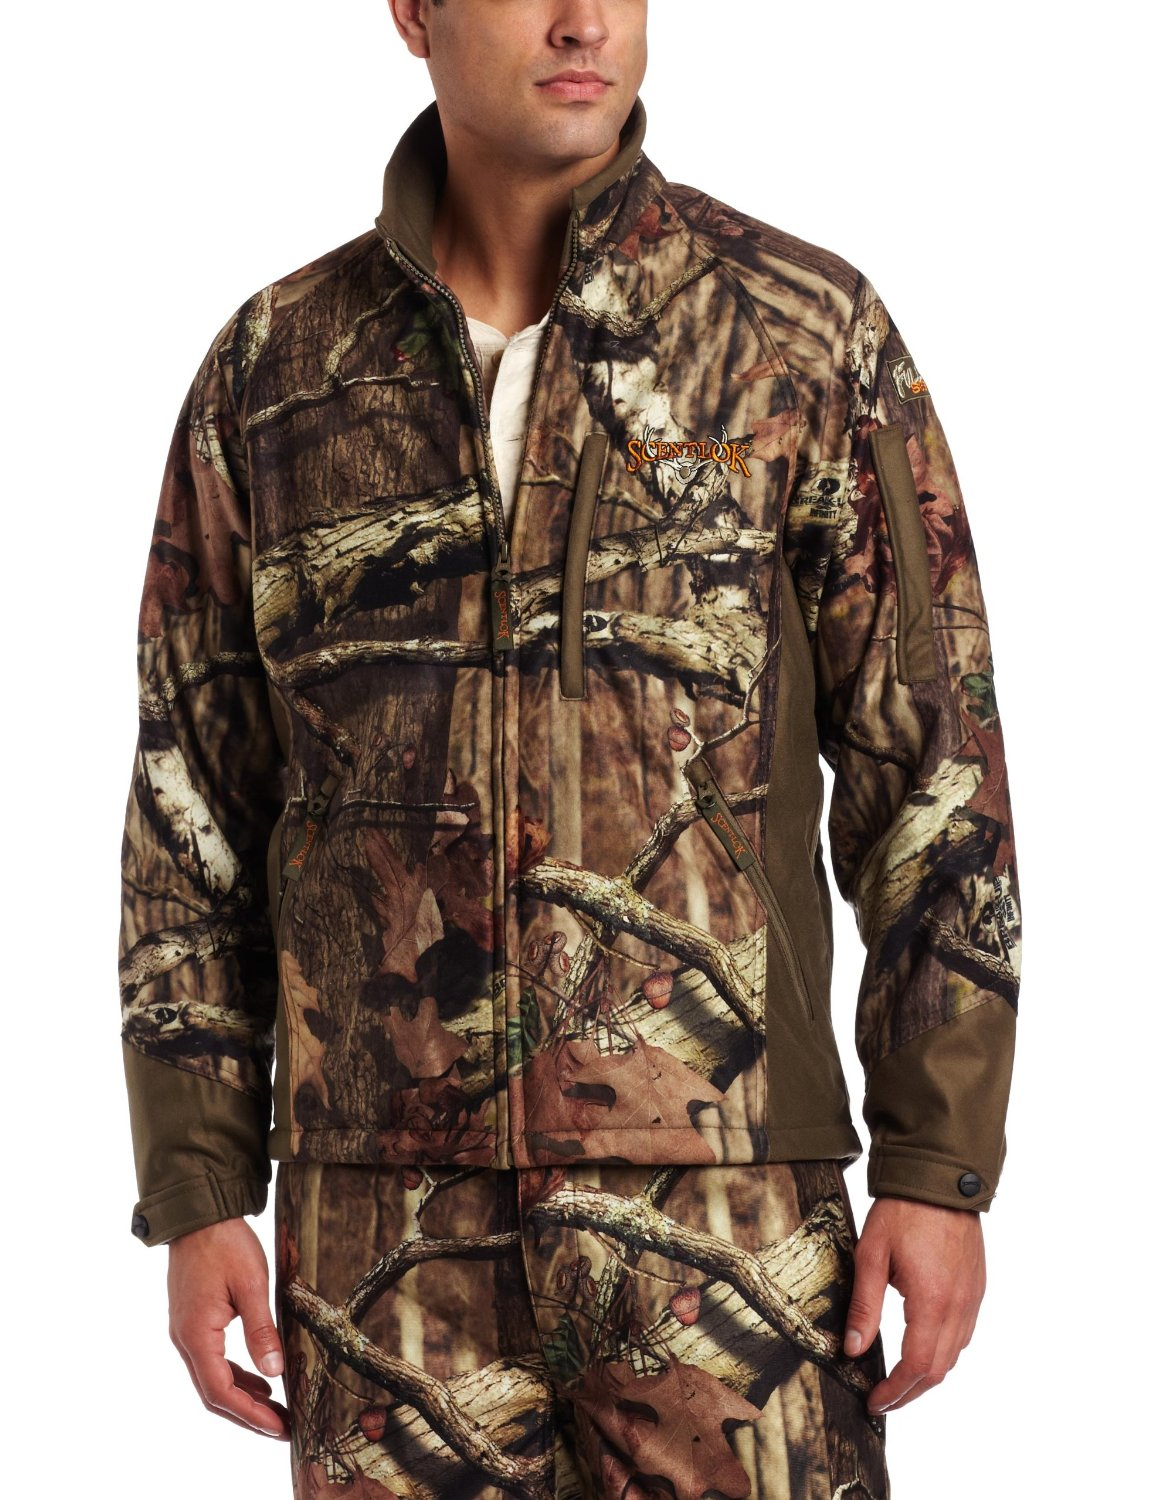 Image of Camo Hunting Suit